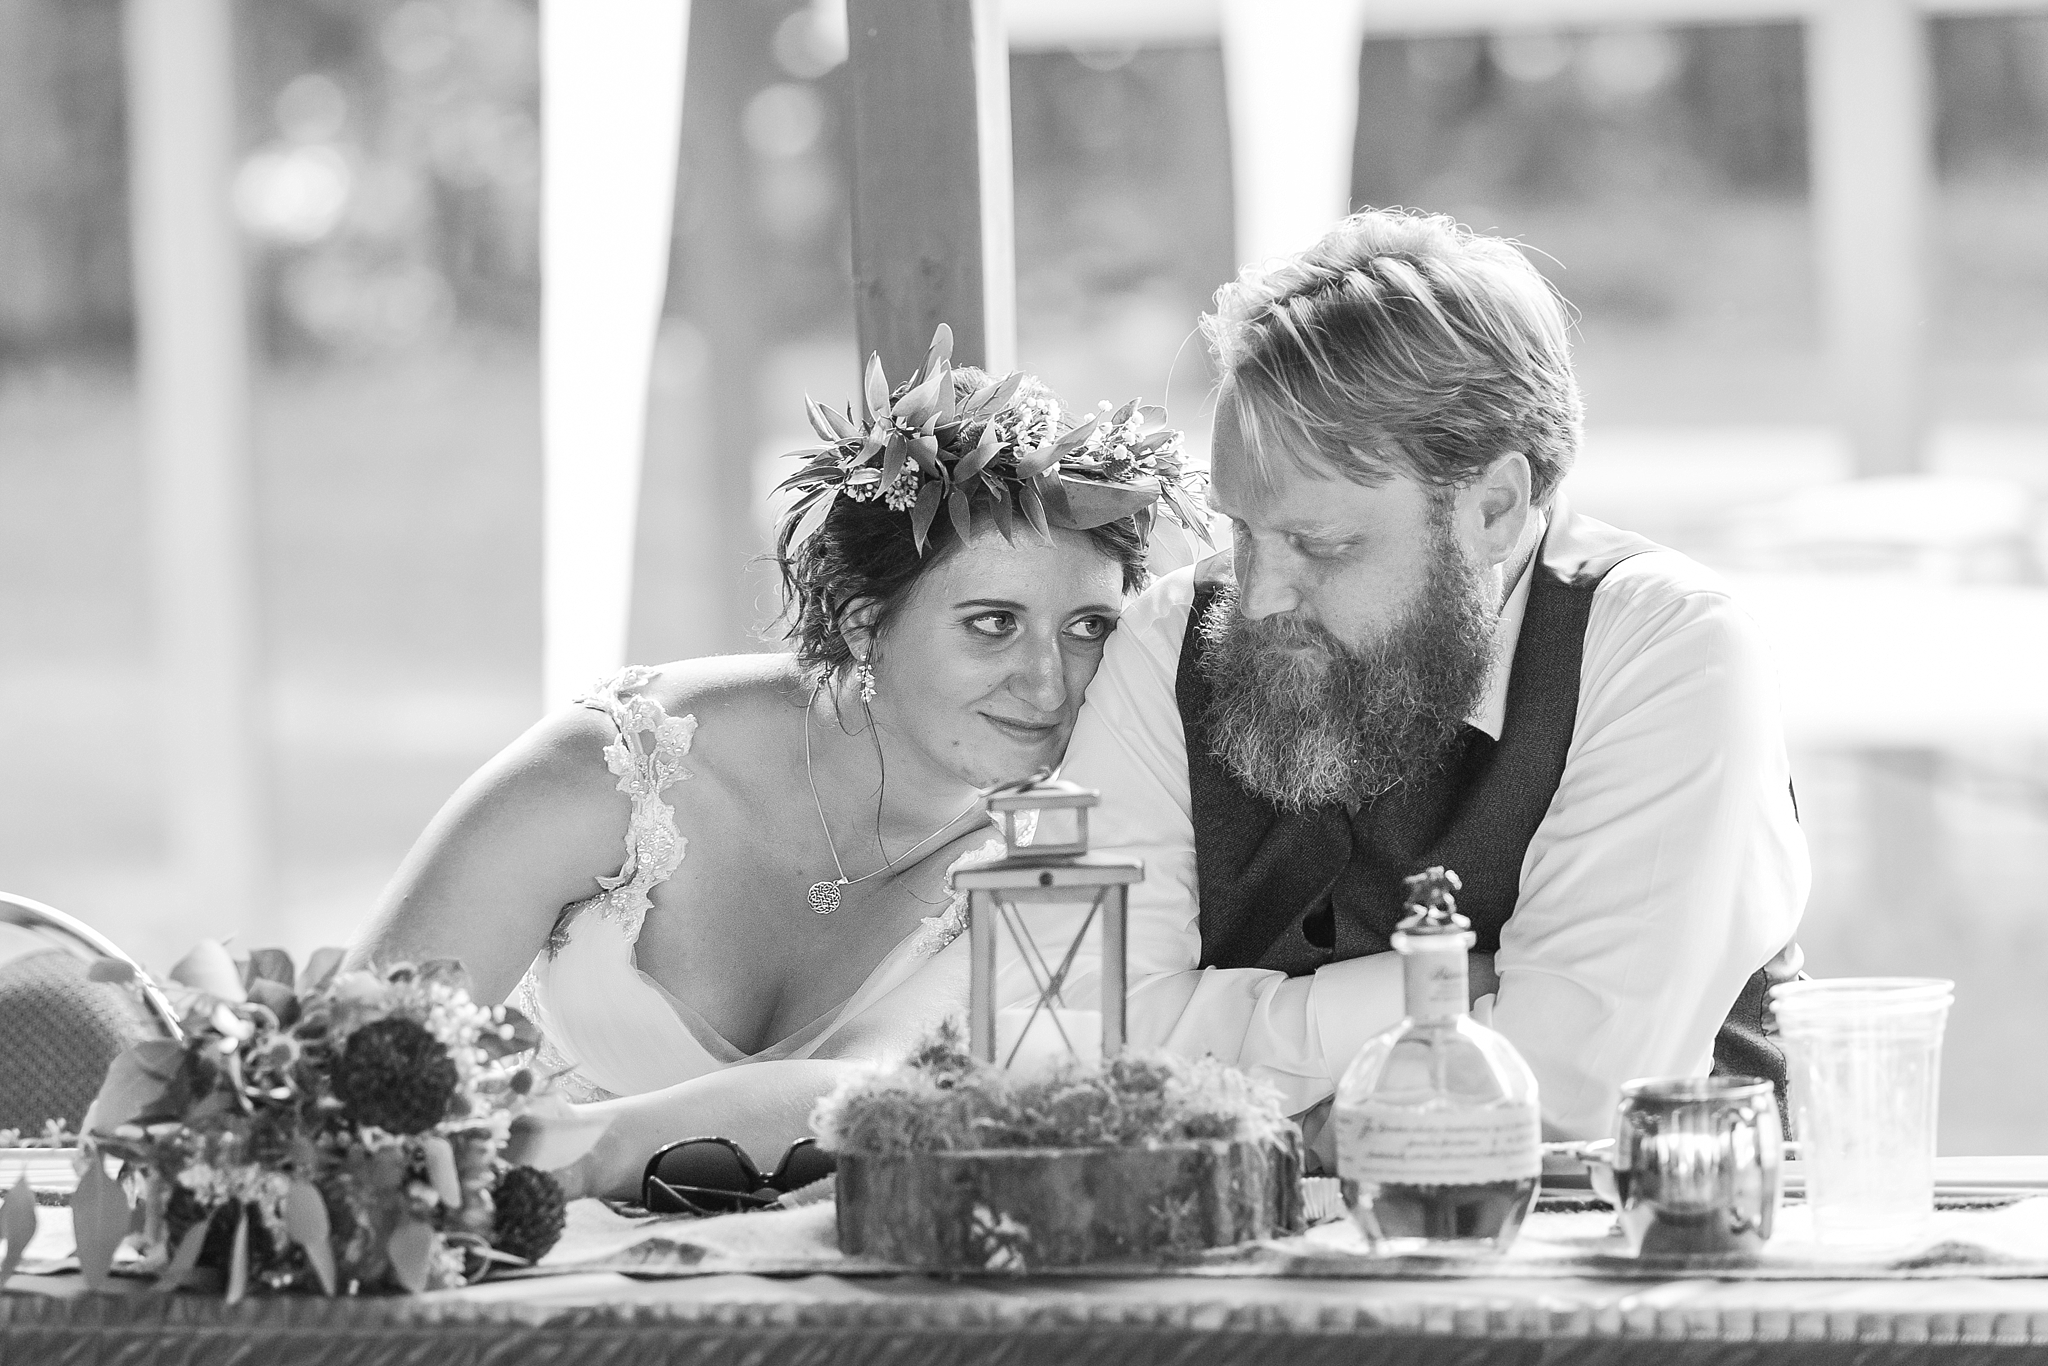 romantic-artful-candid-wedding-photos-in-detroit-lansing-ann-arbor-northern-michigan-and-chicago-by-courtney-carolyn-photography_0049.jpg